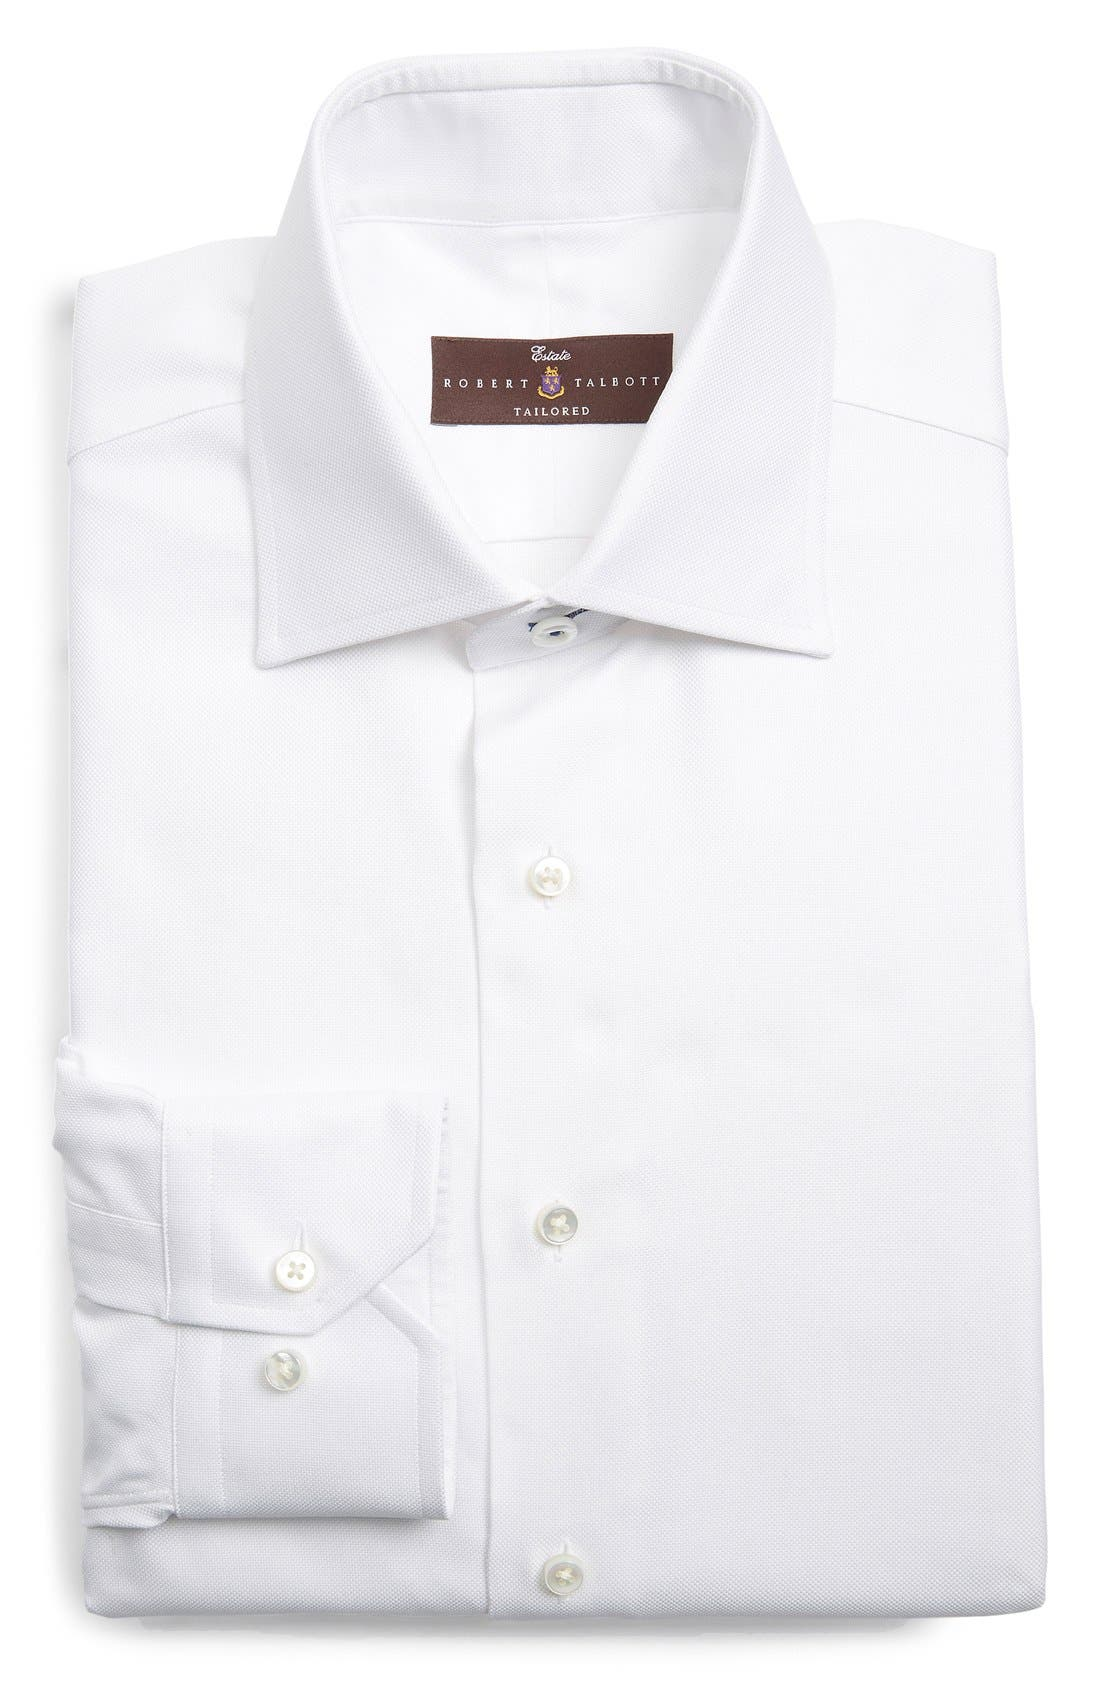 Robert Talbott Trim Fit Dress Shirt